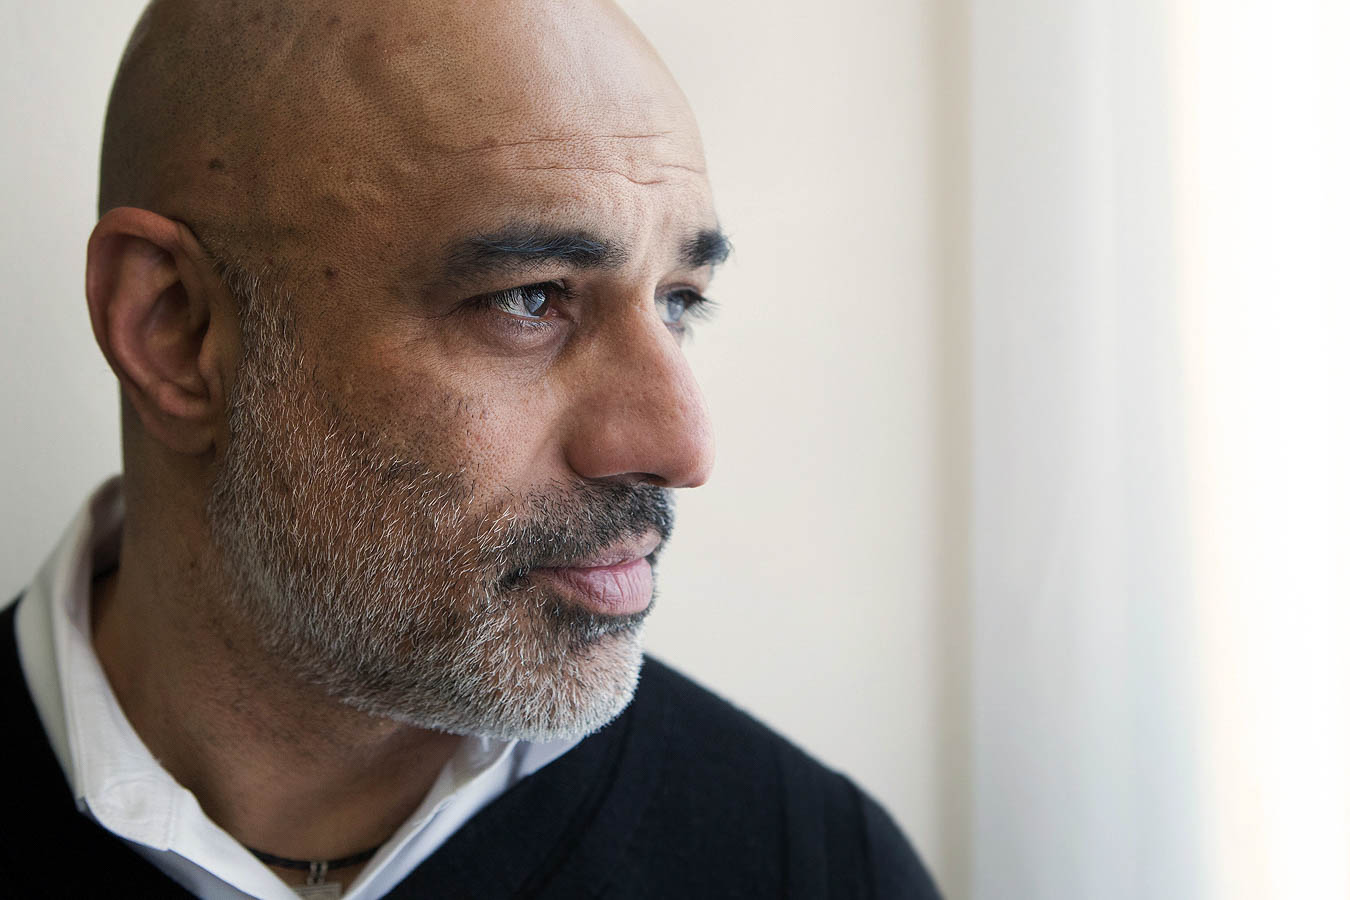 faran tahir facebookfaran tahir twitter, faran tahir iron man, faran tahir imdb, faran tahir instagram, faran tahir wife, faran tahir wiki, faran tahir height, фаран таир, faran tahir kimdir, faran tahir net worth, faran tahir married, faran tahir movies and tv shows, faran tahir othello, faran tahir criminal minds, faran tahir lost, faran tahir facebook, faran tahir vikipedi, faran tahir interview, faran tahir muslim, faran tahir supergirl